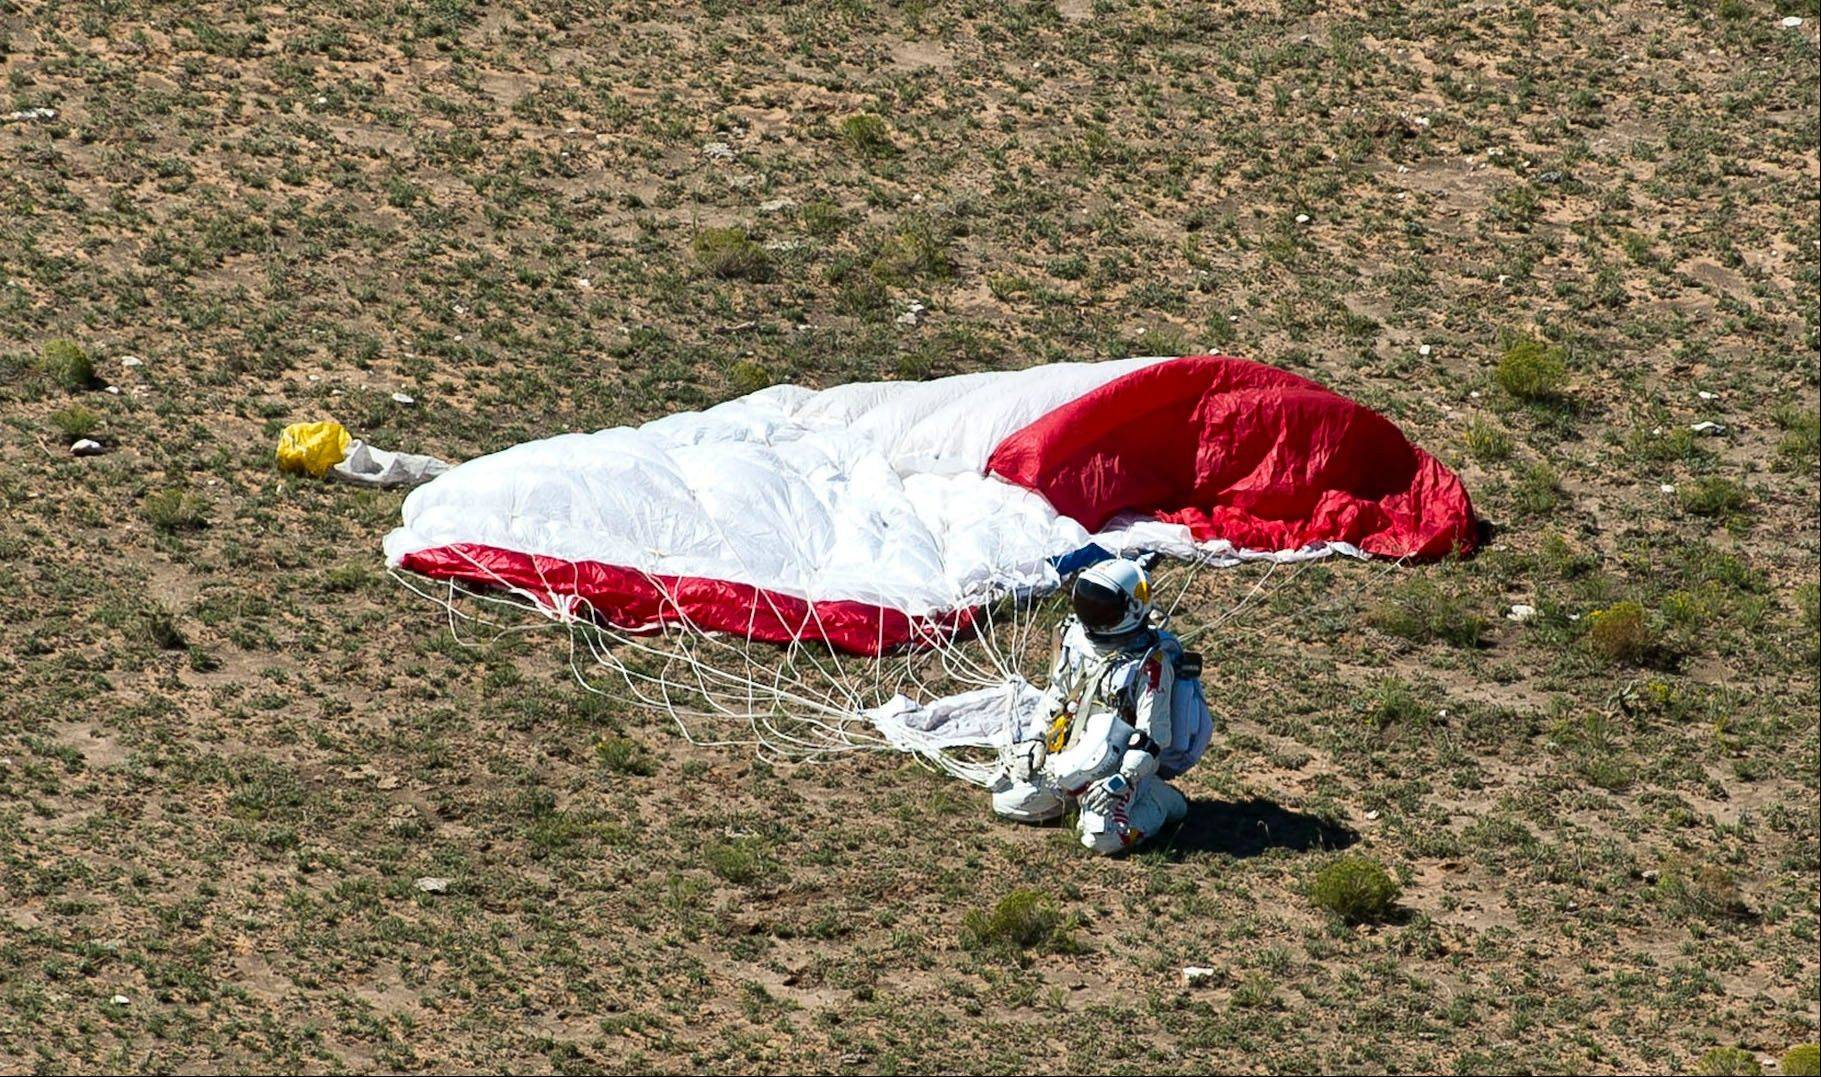 In this photo provided by Red Bull Stratos, pilot Felix Baumgartner of Austria lands in the desert after his successful jump on Sunday, Oct. 14, 2012 in Roswell, N.M. Baumgartner came down safely in the eastern New Mexico desert minutes about nine minutes after jumping from his capsule 128,097 feet, or roughly 24 miles, above Earth.